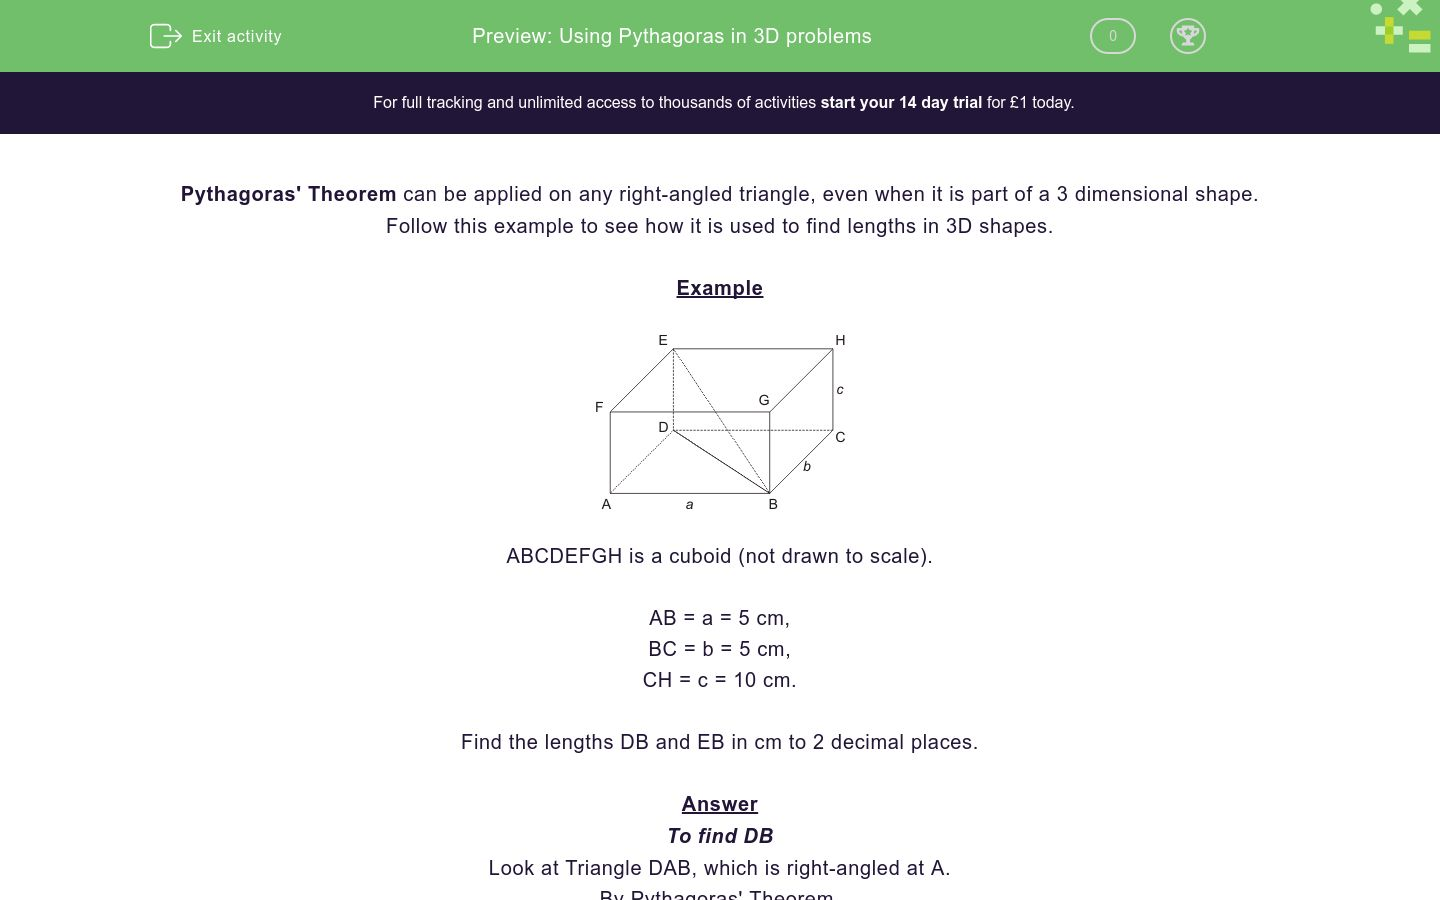 'Using Pythagoras in 3D problems' worksheet